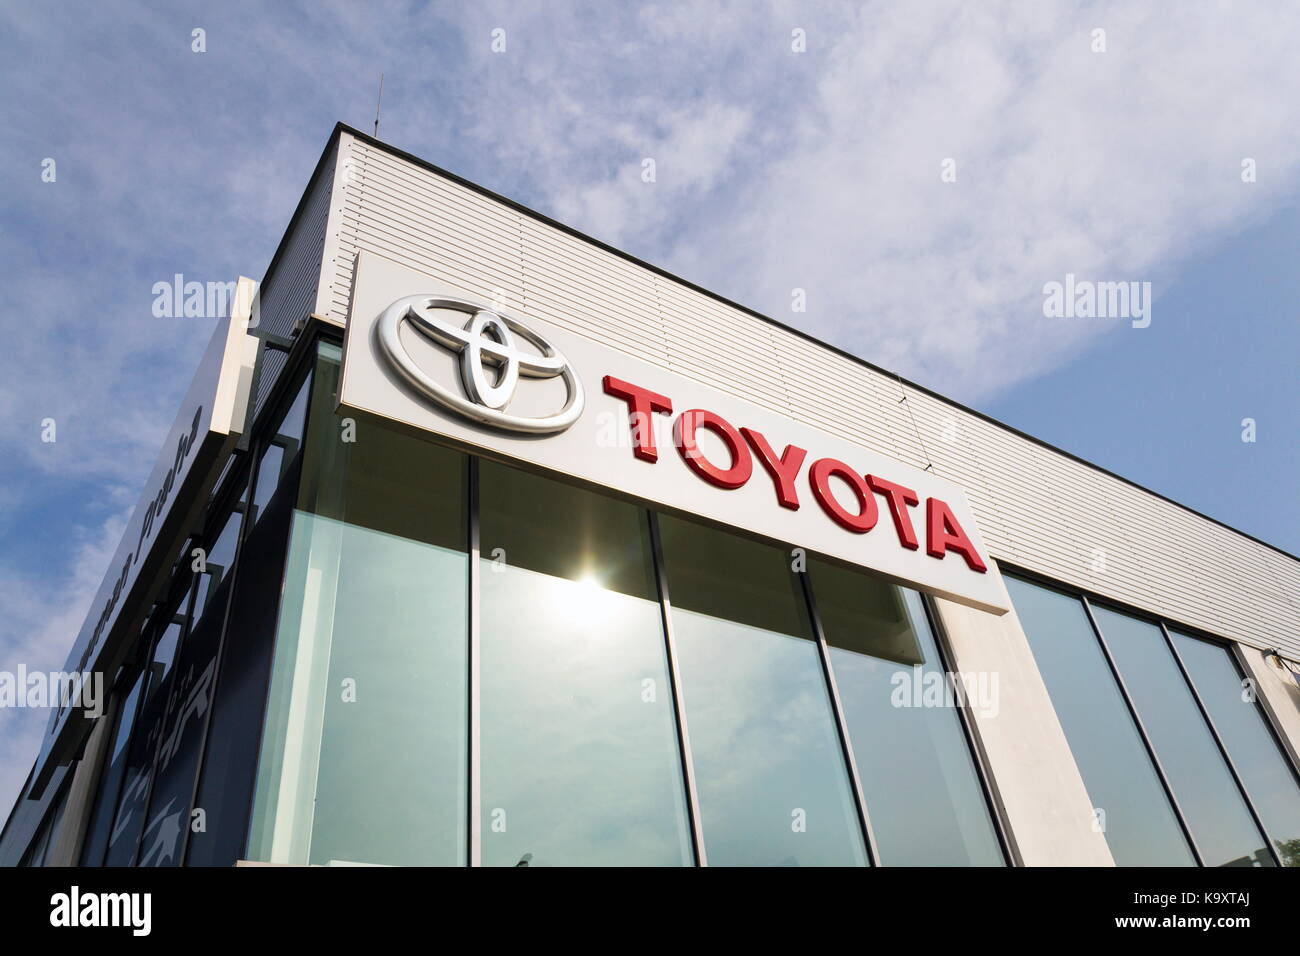 toyota motor corporation ohr To be an essential part of toyota motor asia pacific and the toyota company worldwide to be the most admired and revered company in thailand principles continually adapt to meet new challenges and changes respect and accept competetor emphasize customer satisfaction.